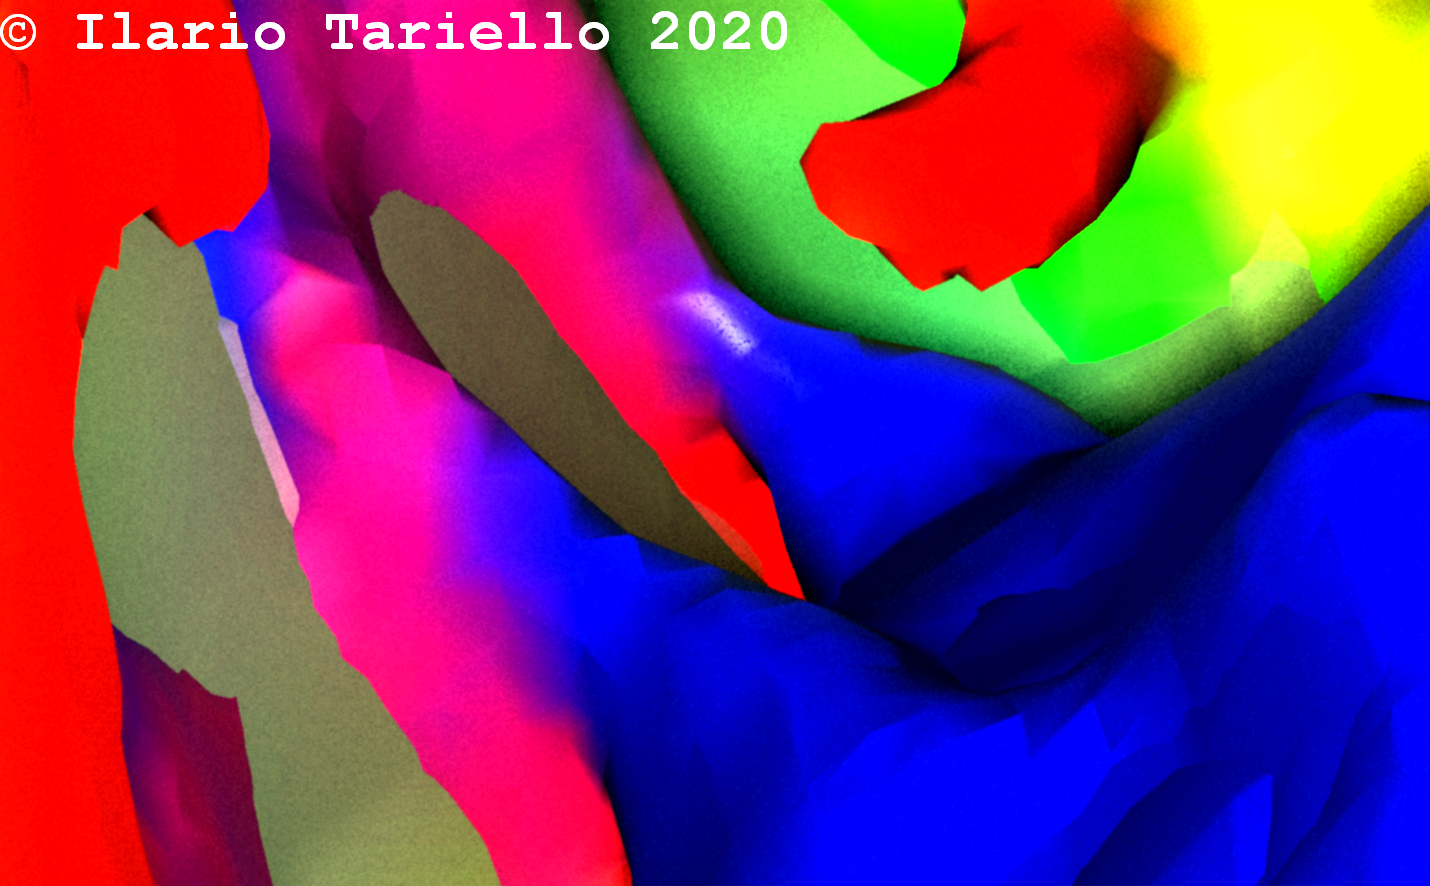 Ilario Tariello's Technology Innovation samples - posted on LinkedIn